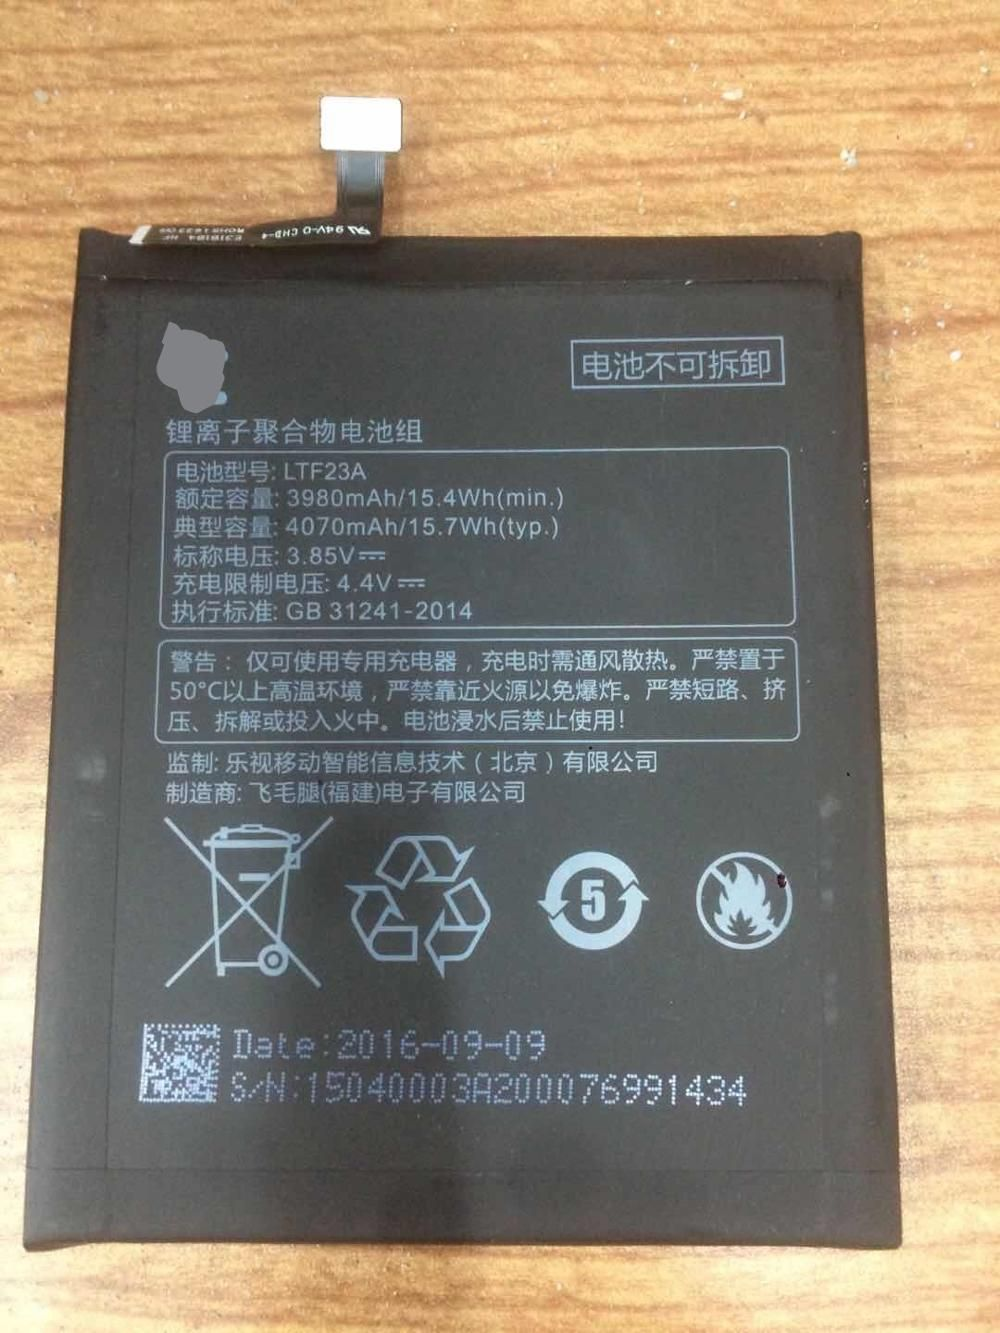 FOR Letv/pro3 X720 LTF23A battery Rechargeable Li-ion Built-in lithium polymer battery